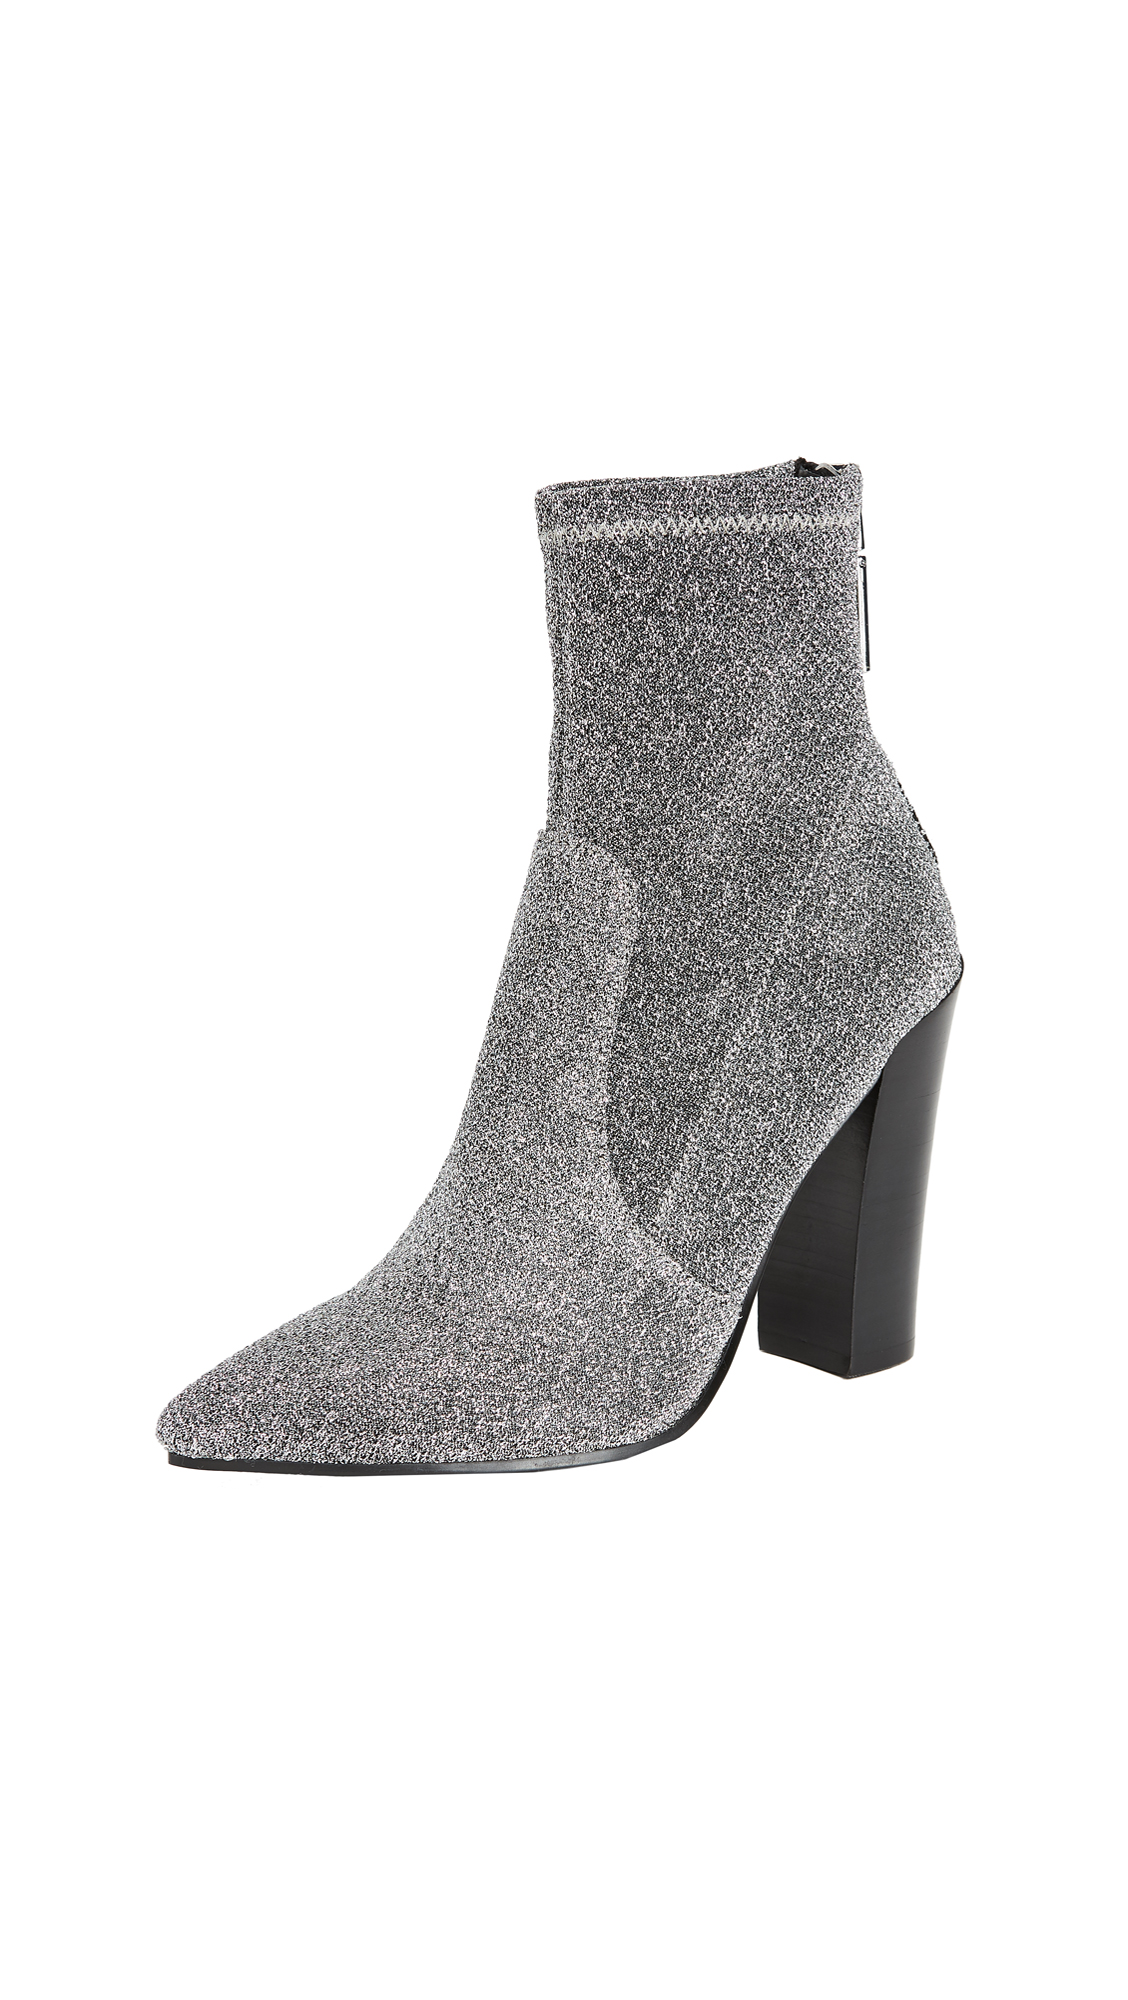 Dolce Vita Elana Stretch Booties - Pewter